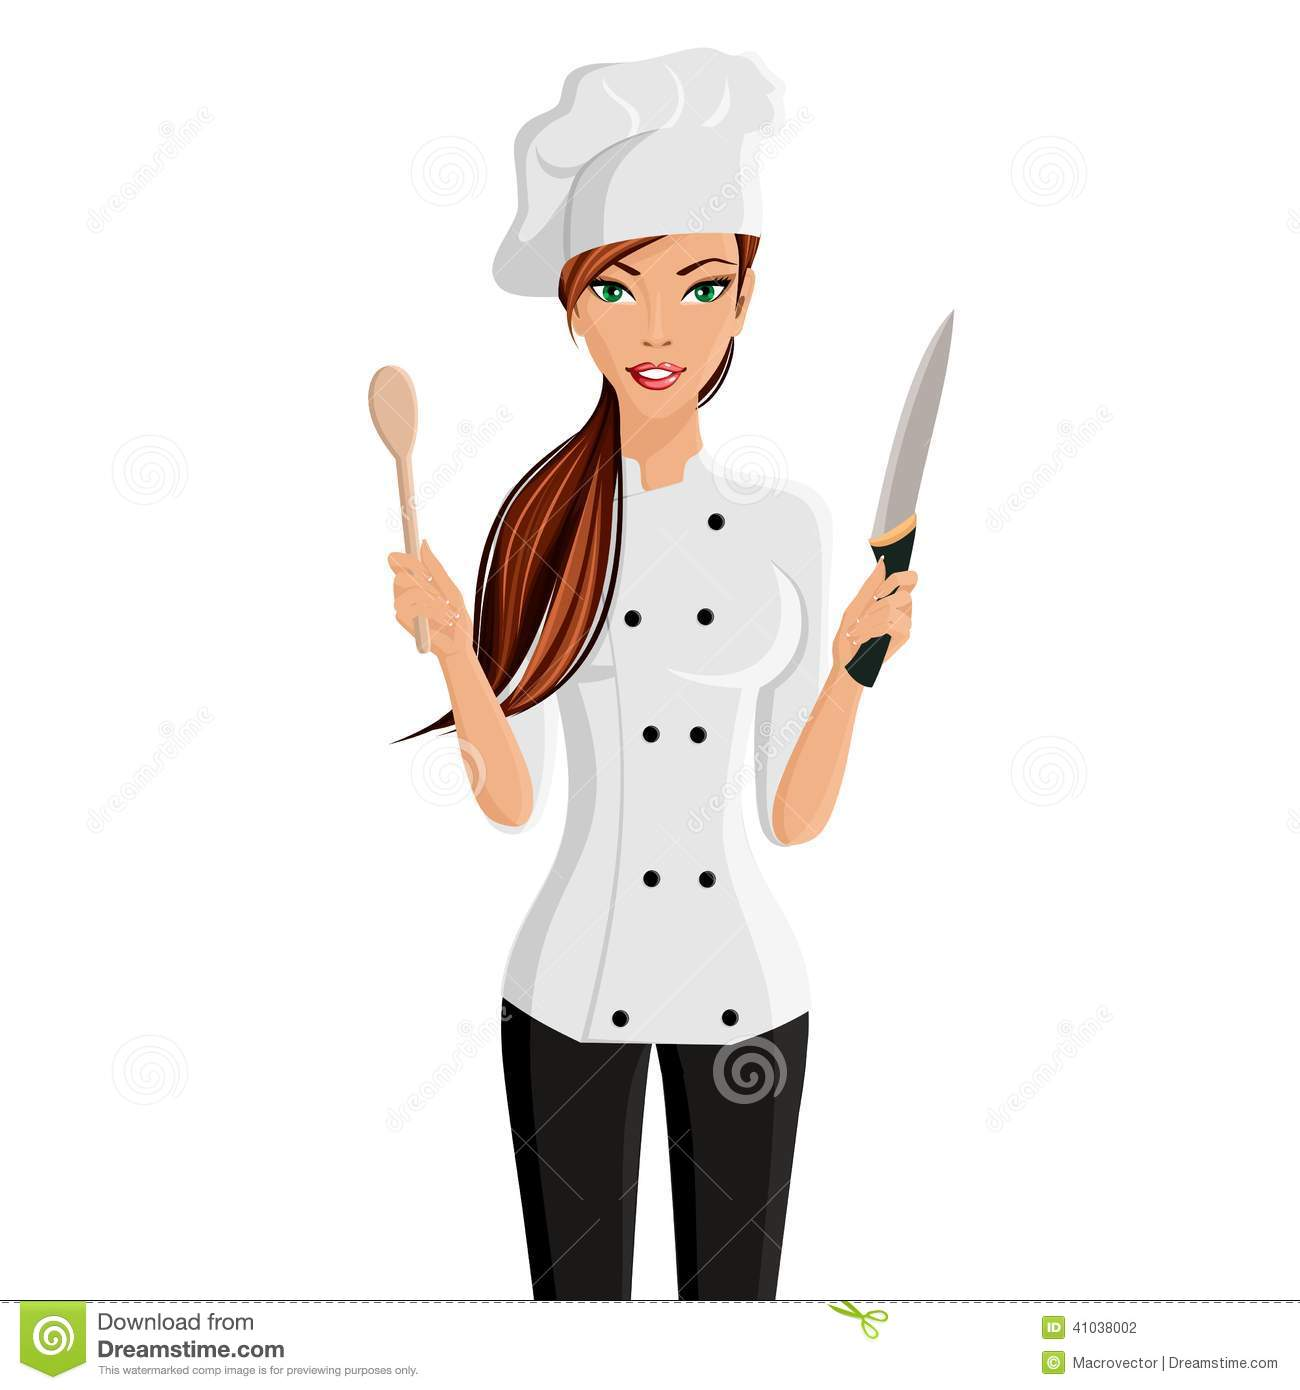 Chef clipart girl freeuse Woman Chef Clipart - Clipart Kid freeuse